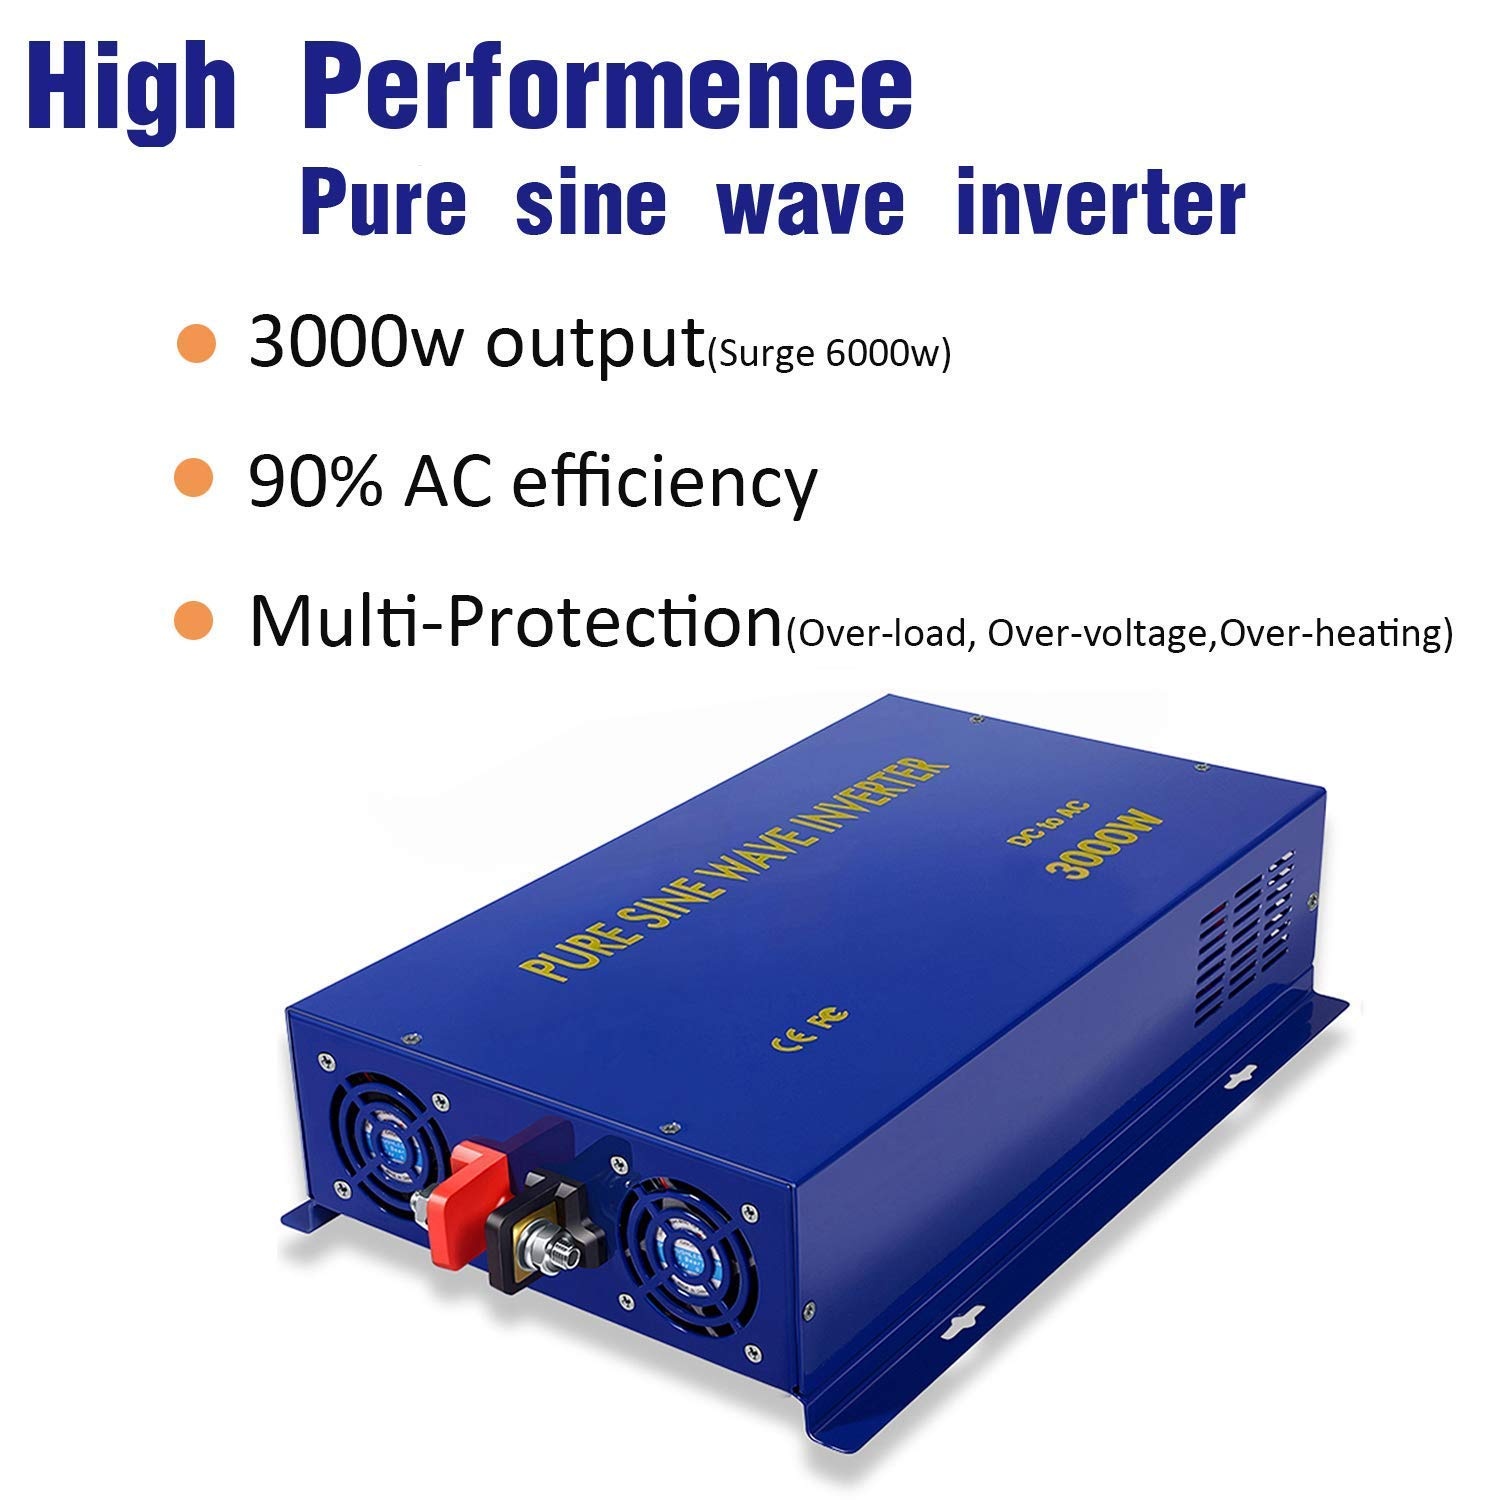 Xyz Invt 3000w Pure Sine Wave Power Inverter 12v Dc To Sinewave Generator Circuitcircuit Diagram World 120v Ac With 2 Outlets Set Of Battery Cables Converter For Home